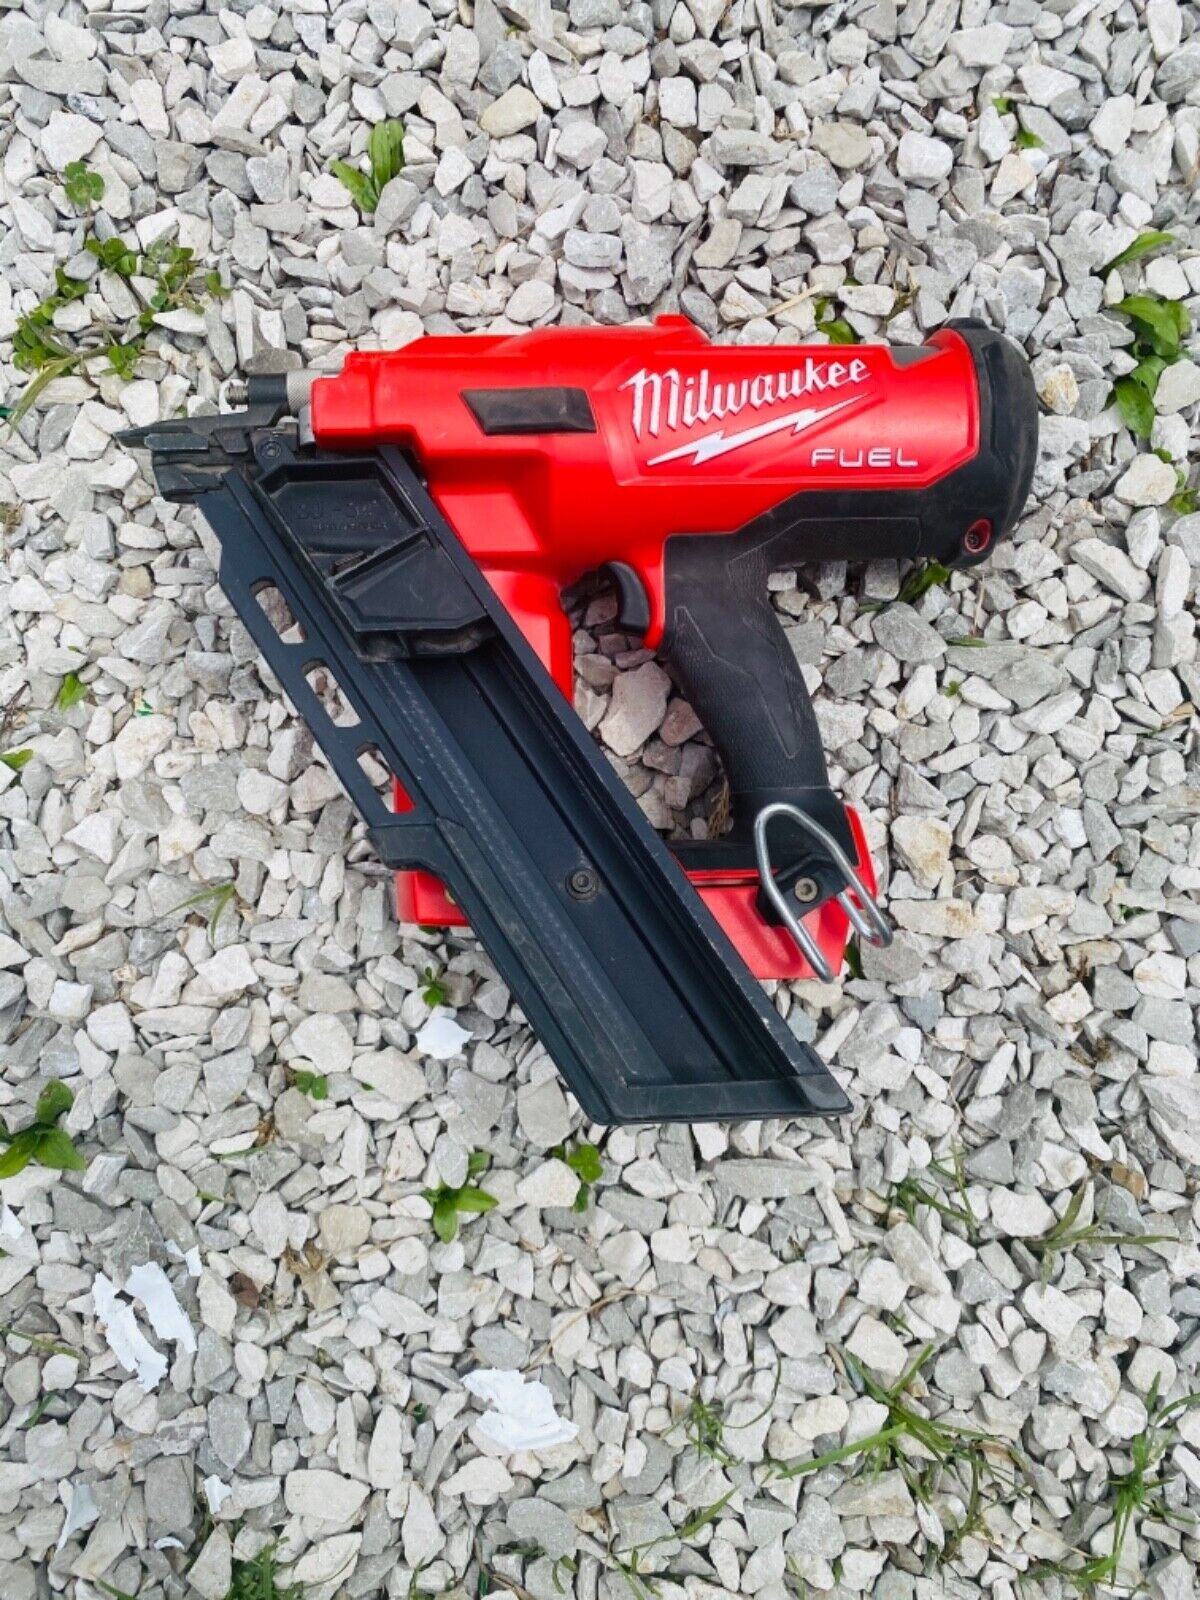 Milwaukee 2745-20 M18 FUEL 30 Degree Cordless Framing Nailer (Tool Only). Buy it now for 275.00